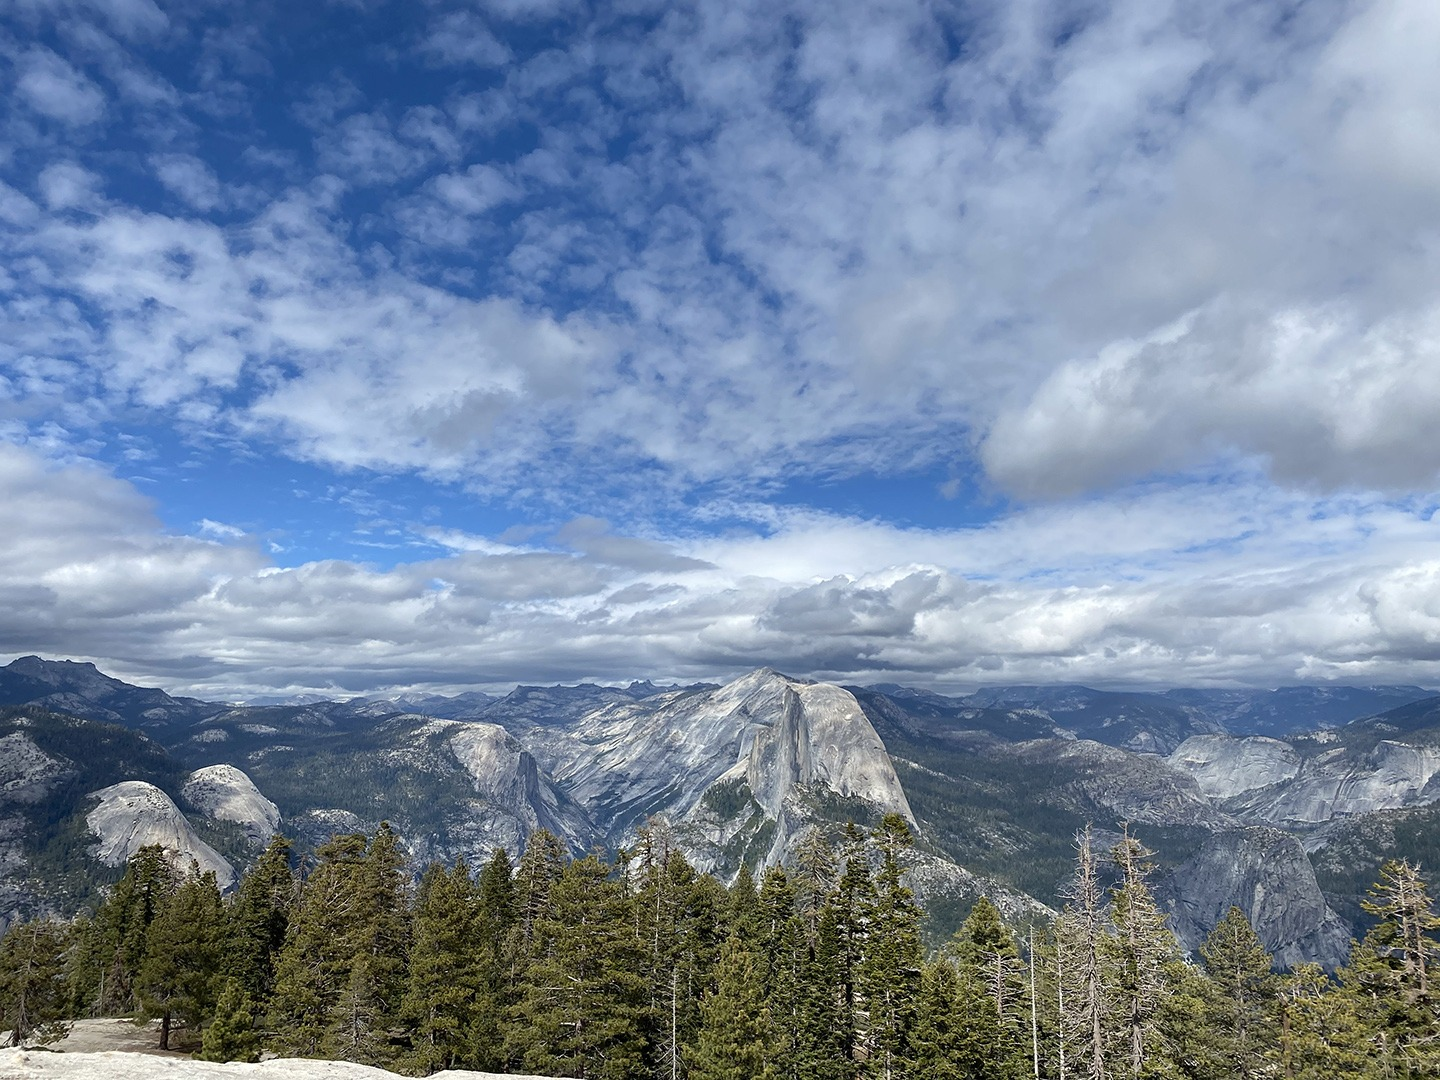 A landscape photo of the view from Sentinel Dome, with Half Dome, Clouds Rest and distant Sierra Nevada peaks visible.